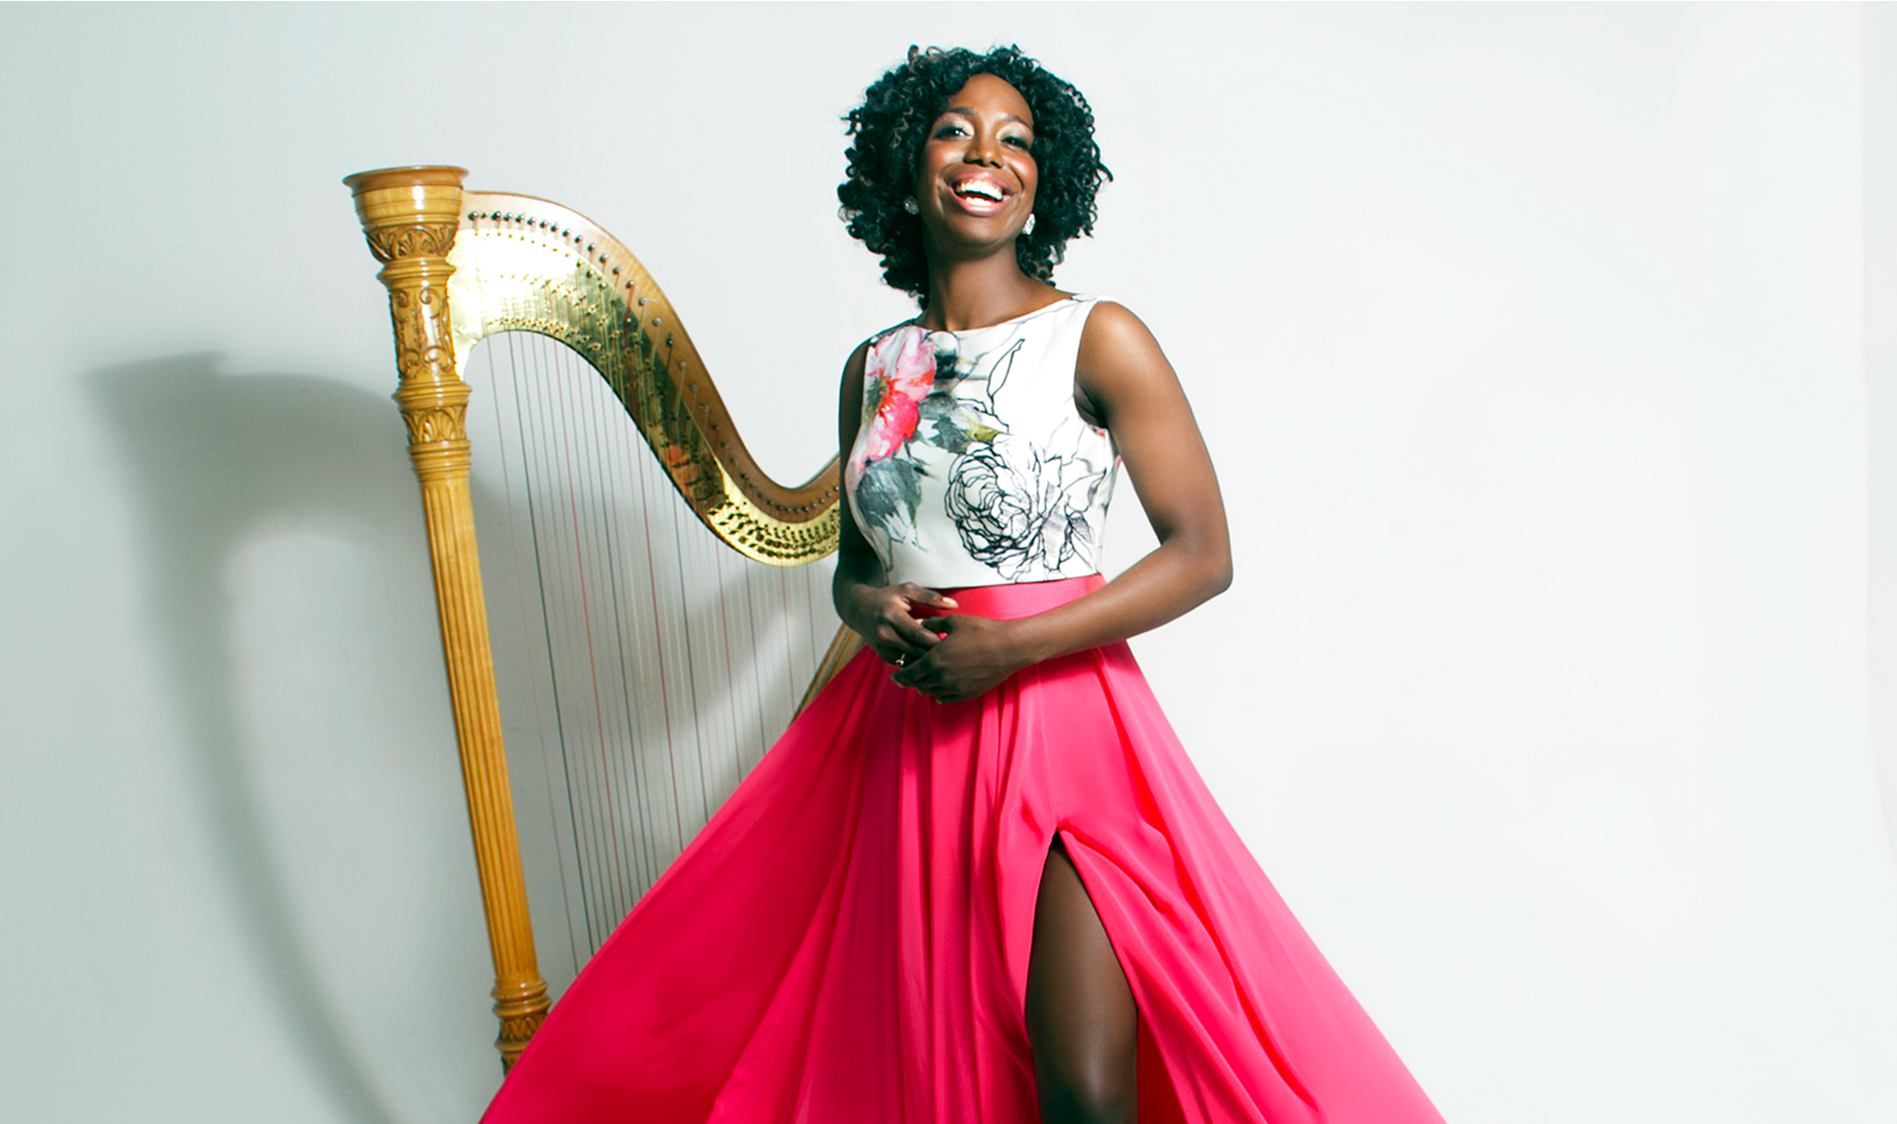 CHICAGO READER: Brandee Younger Picks Up the Torch of Jazz Harp Pioneers for the Hip-Hop Generation